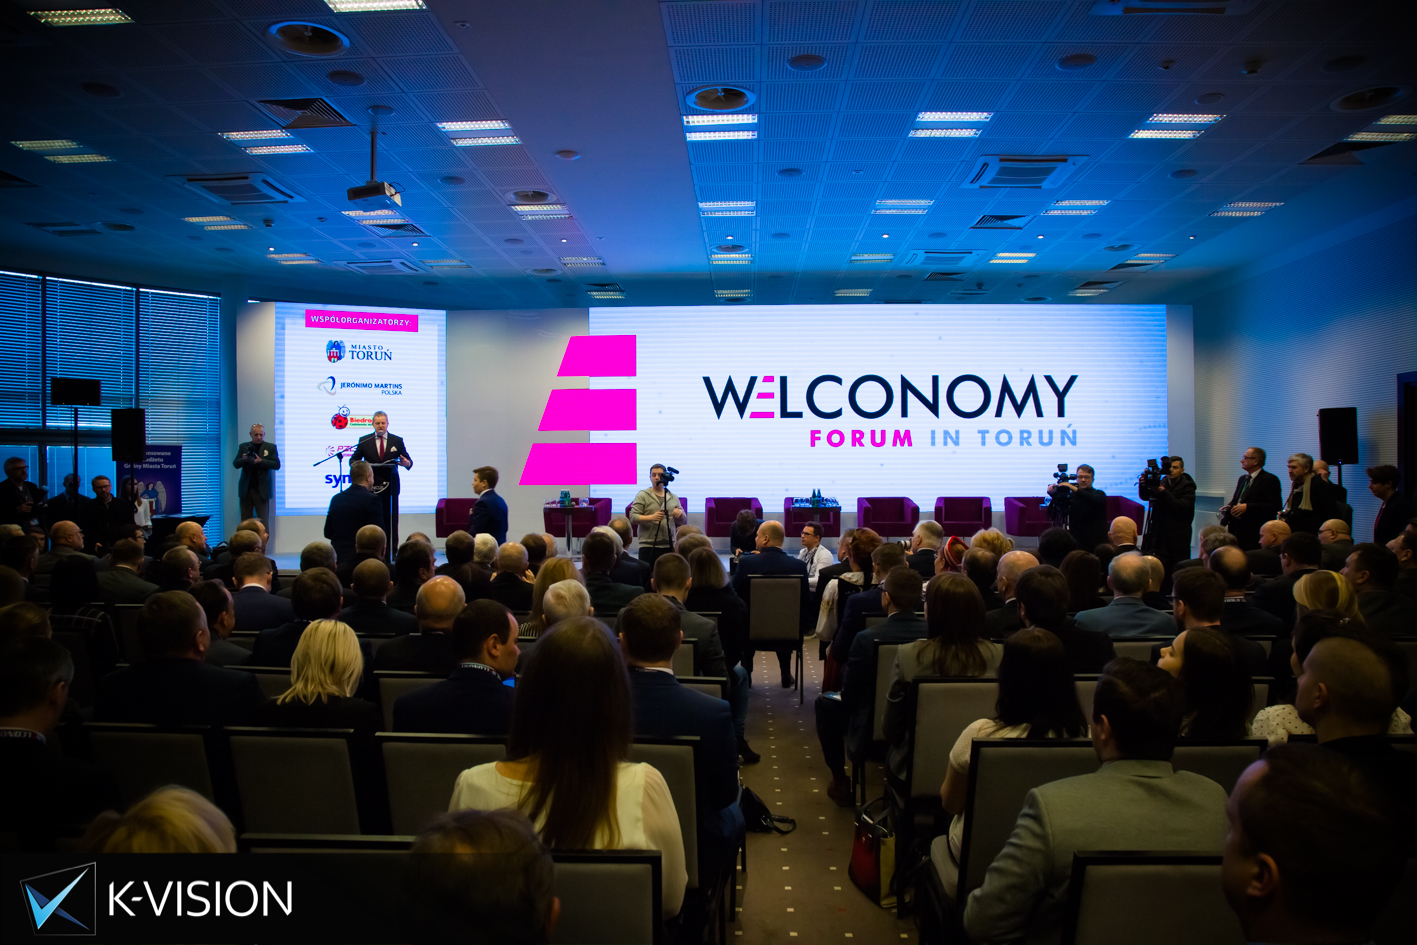 WELCONOMY FORUM